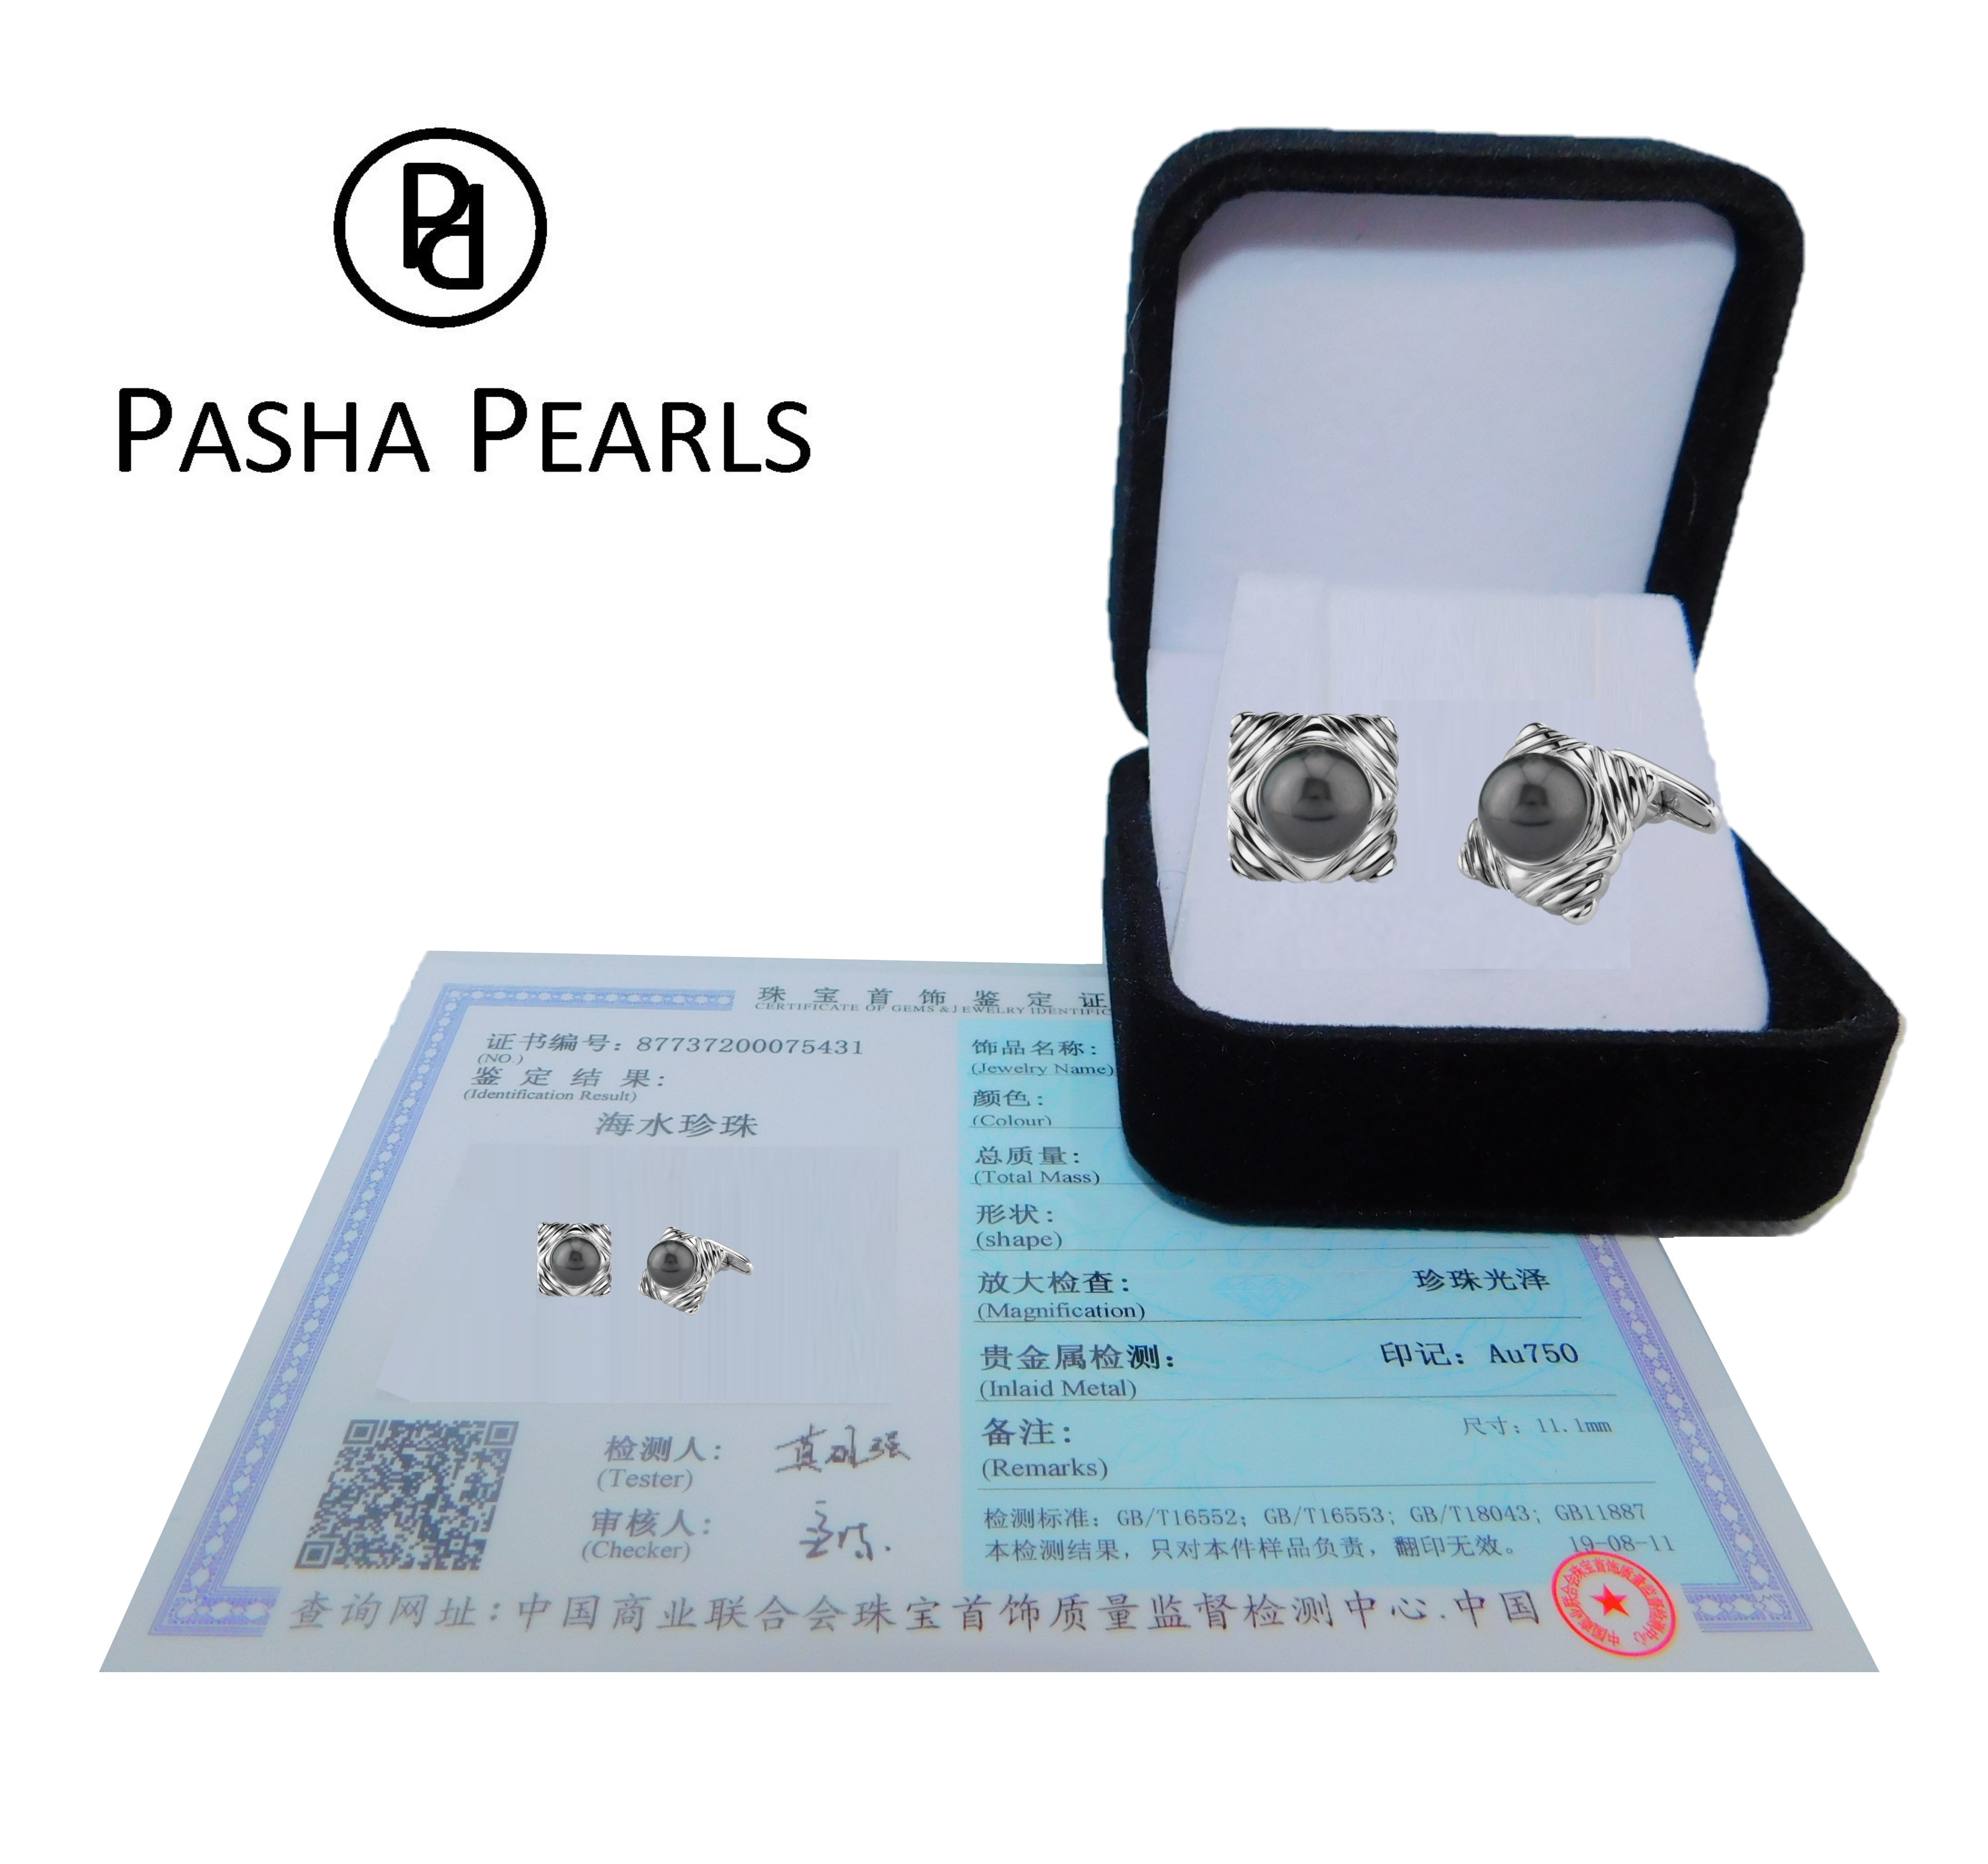 These stunning cufflinks feature beautiful mother of pearl linings and cubic zirconia crystals